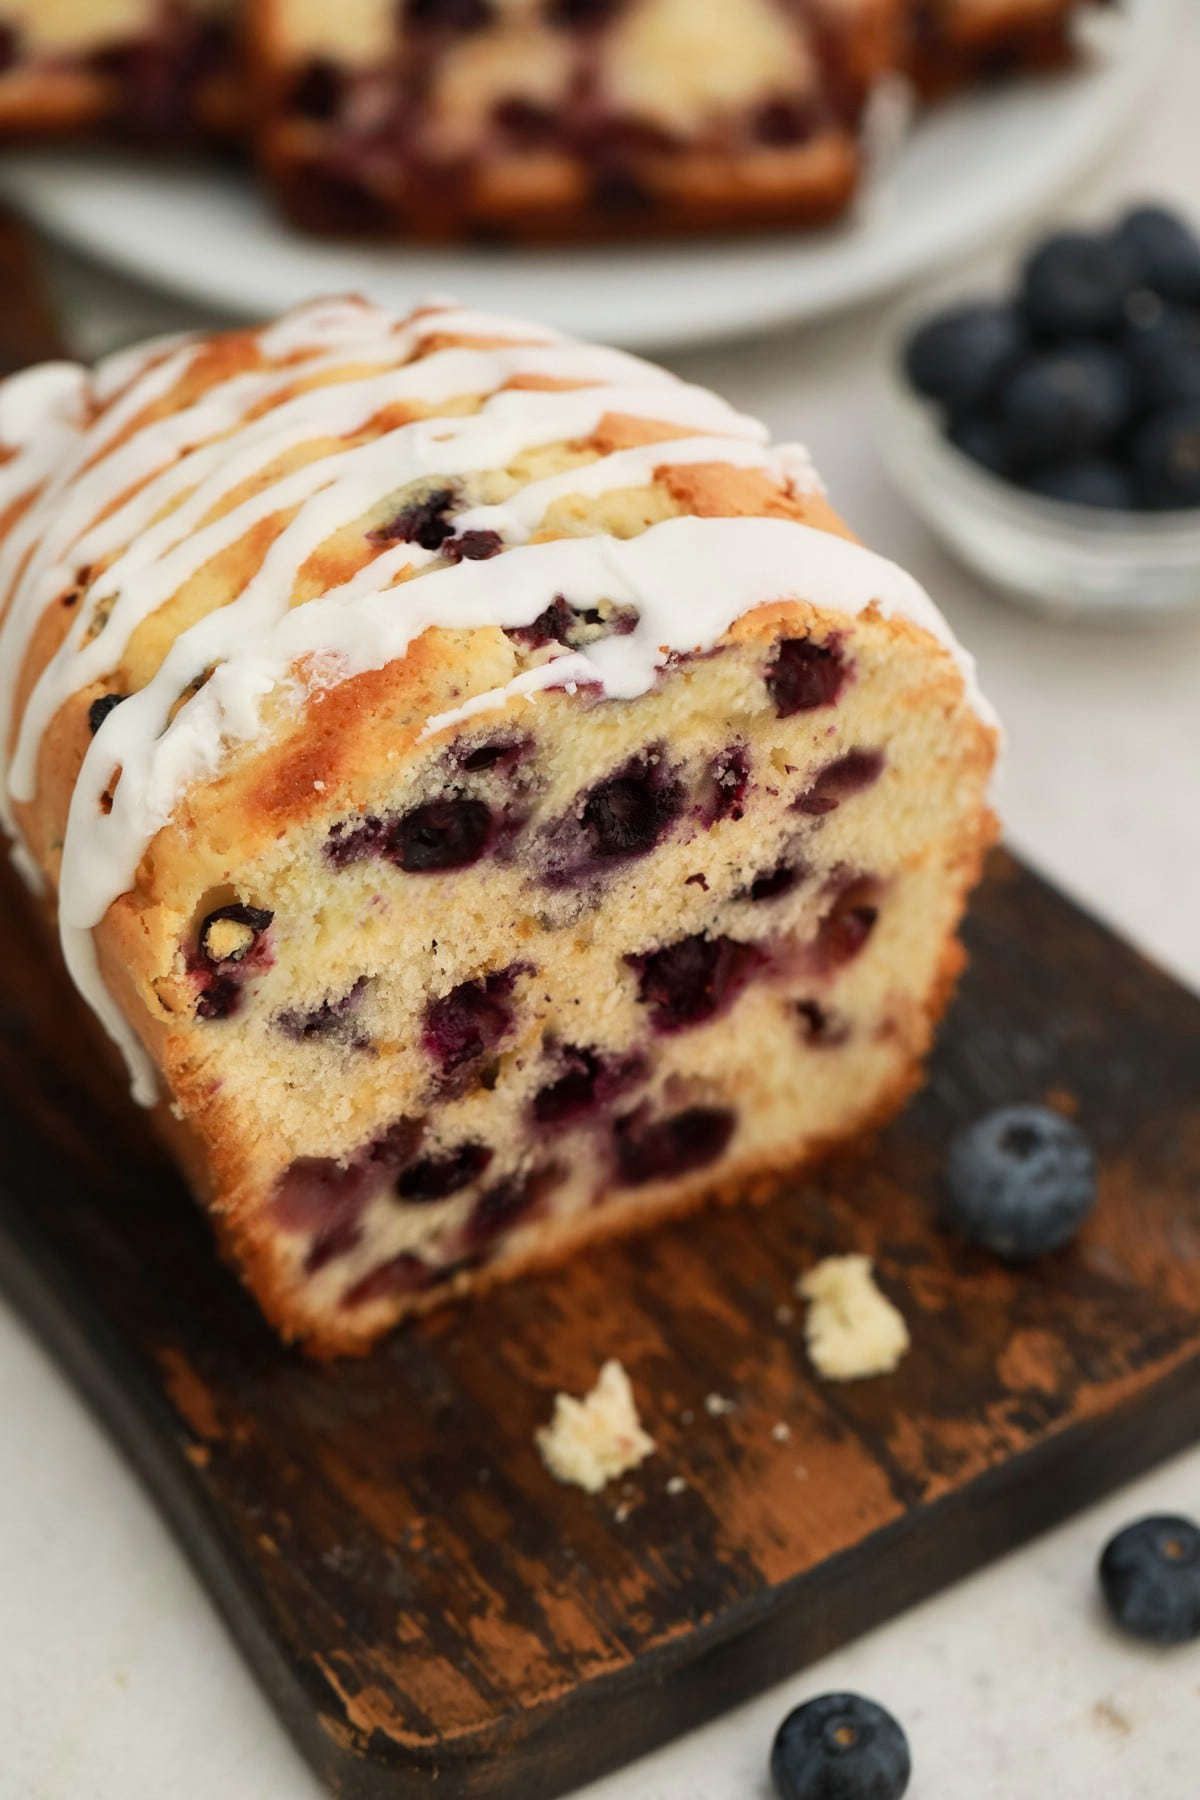 Loaf of blueberry bread with end cut off on cutting board